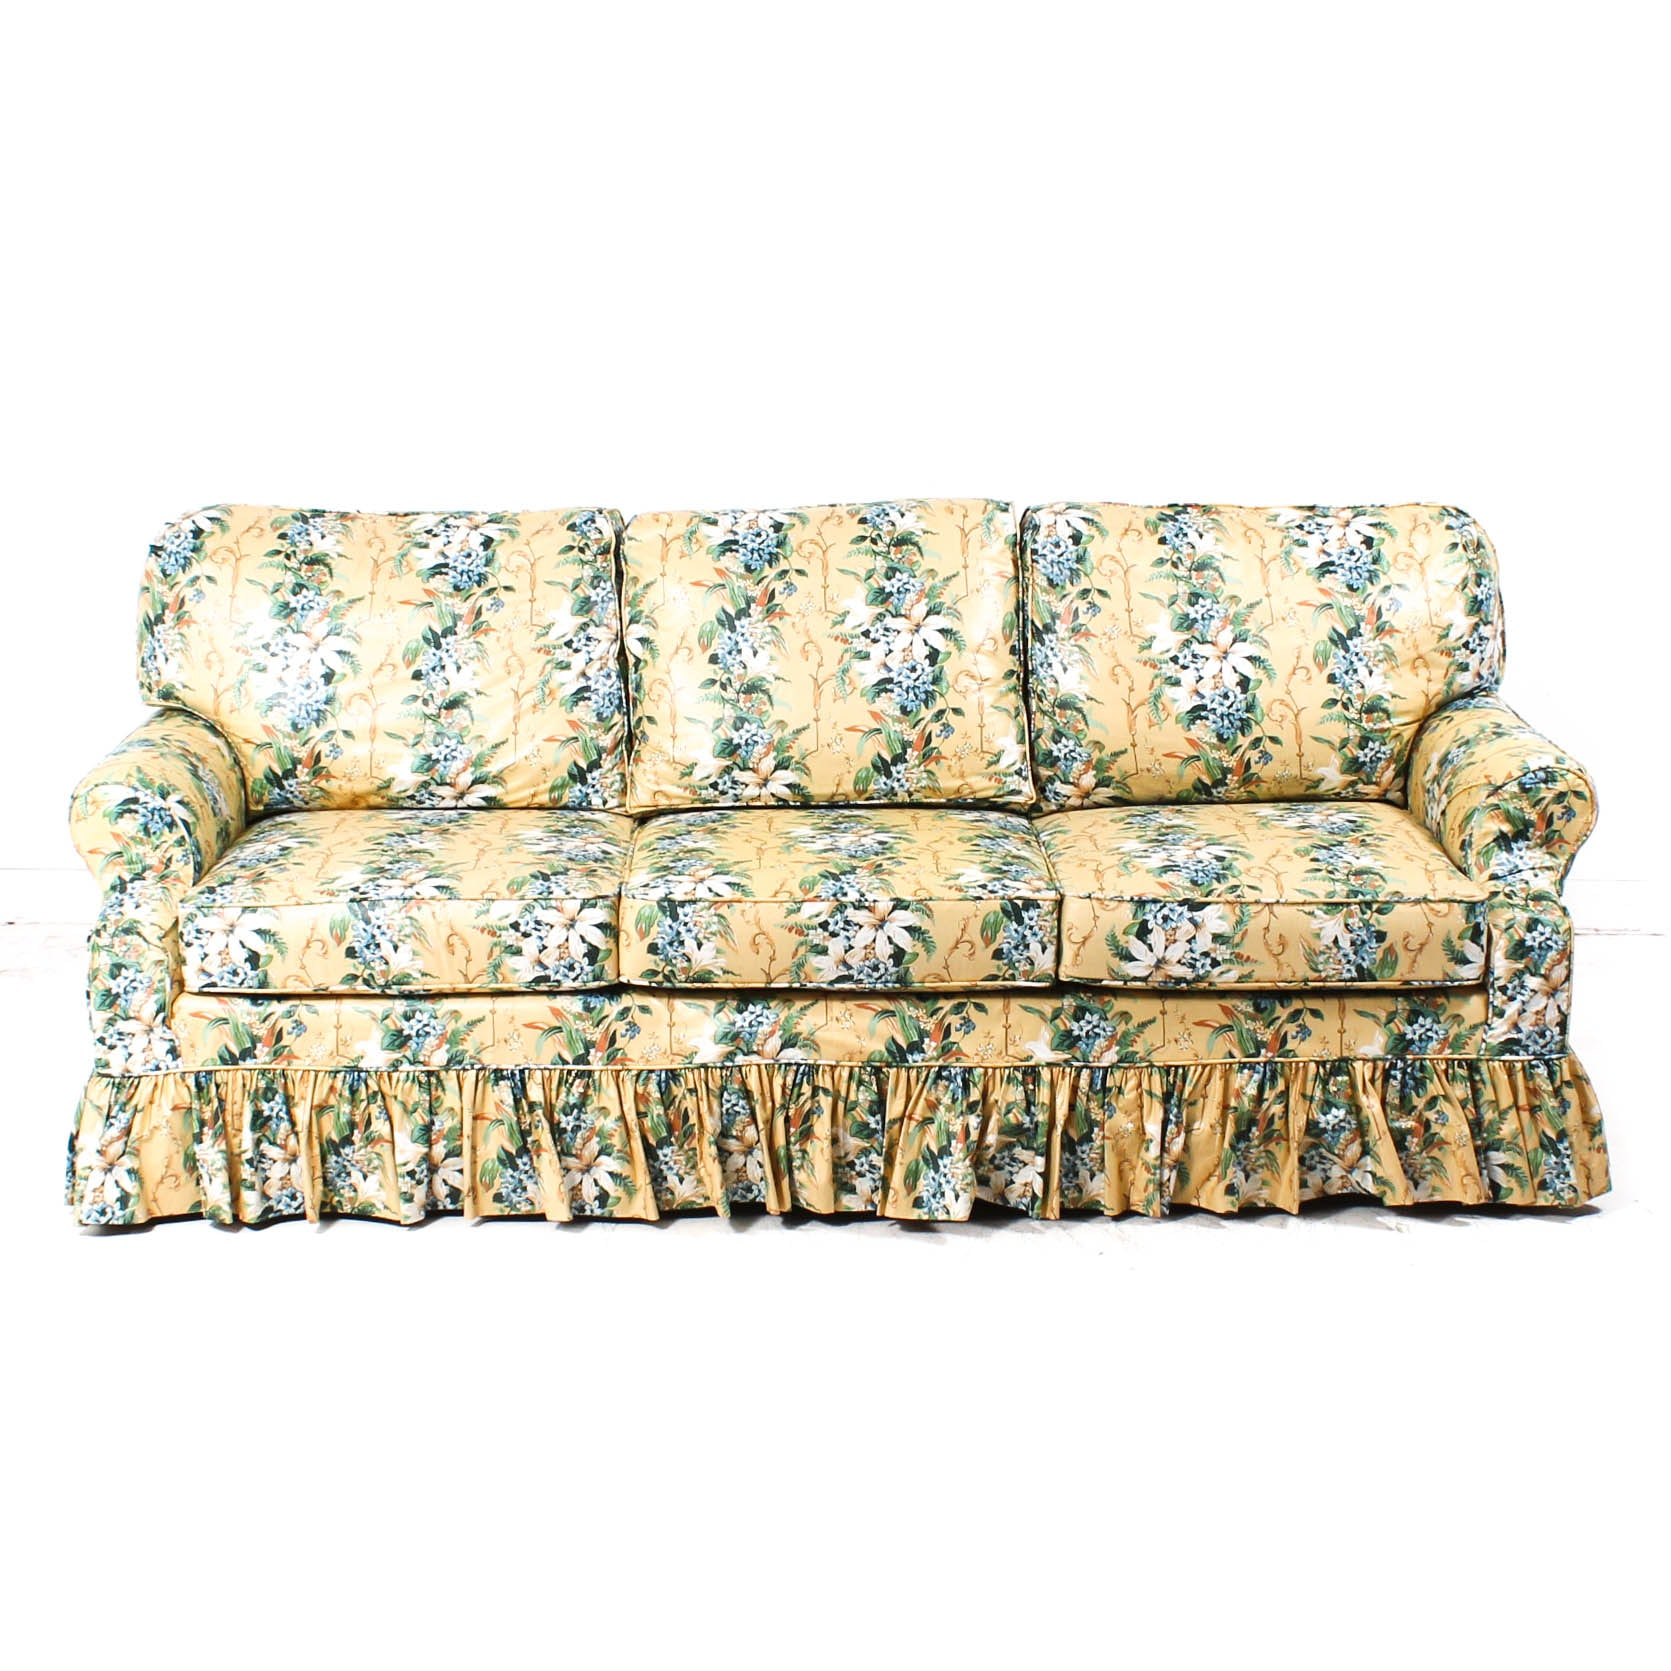 Berne Sofa with Floral Cover